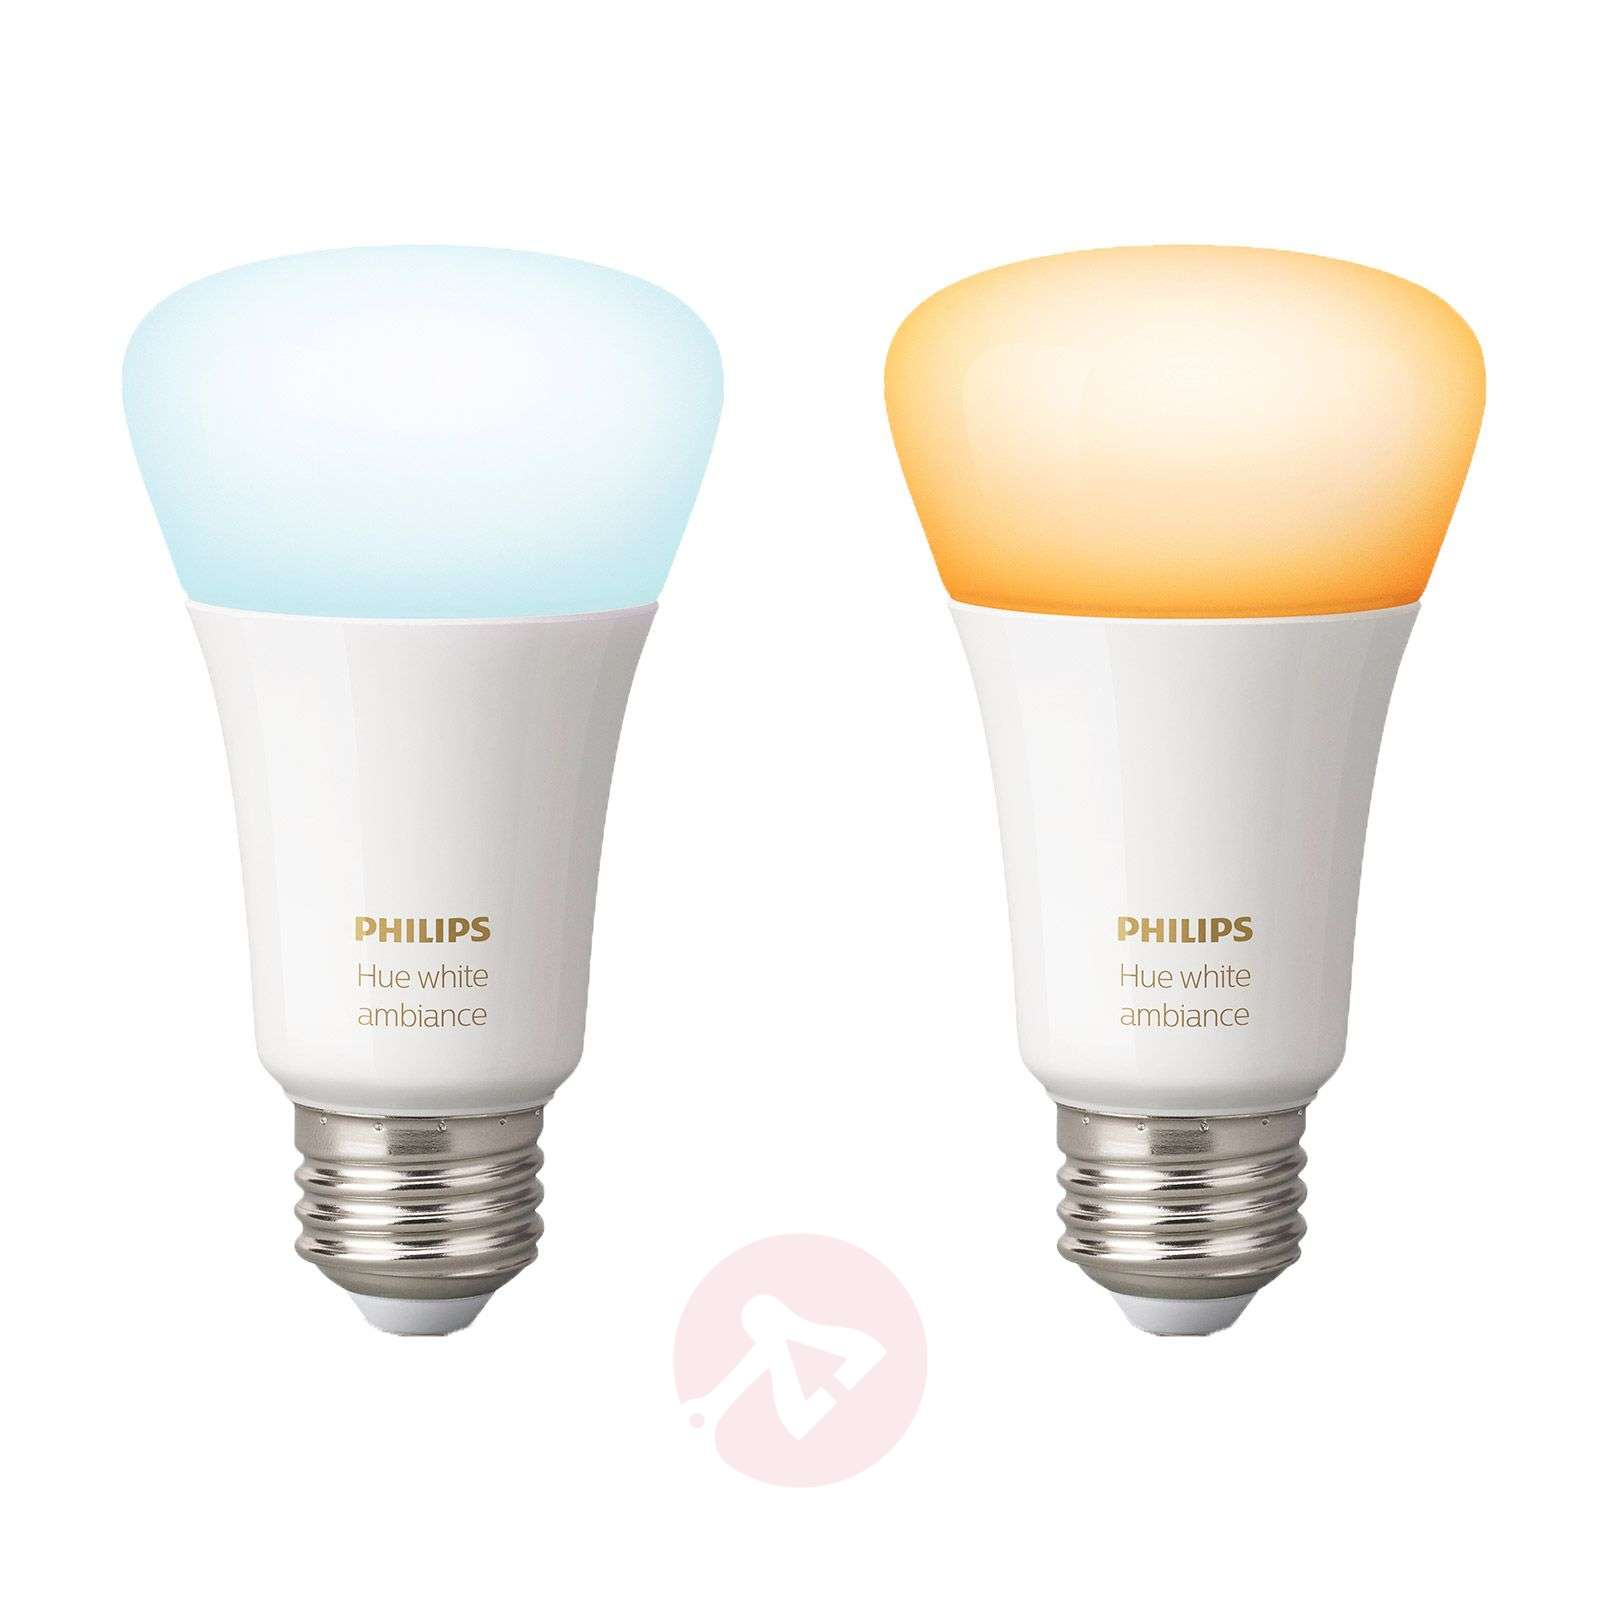 Philips Hue White Ambiance E27 8,5W, set van 2 st.-7534127-01